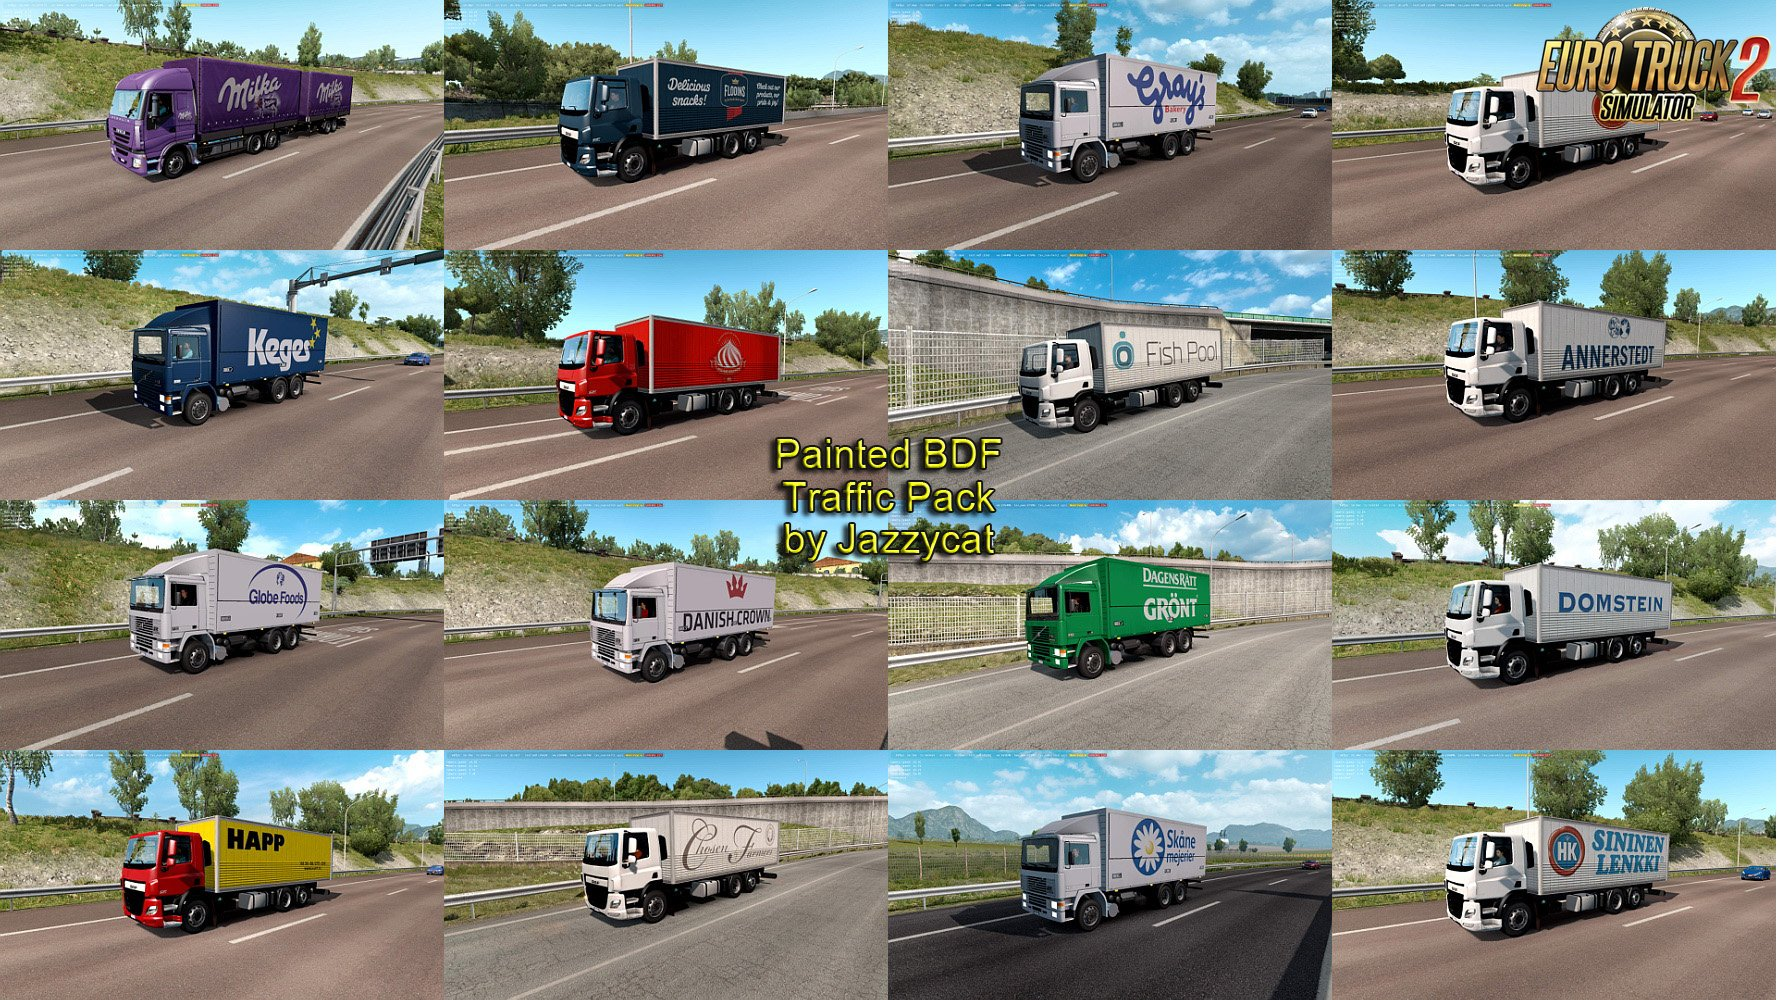 Painted BDF Traffic Pack v4.0 by Jazzycat